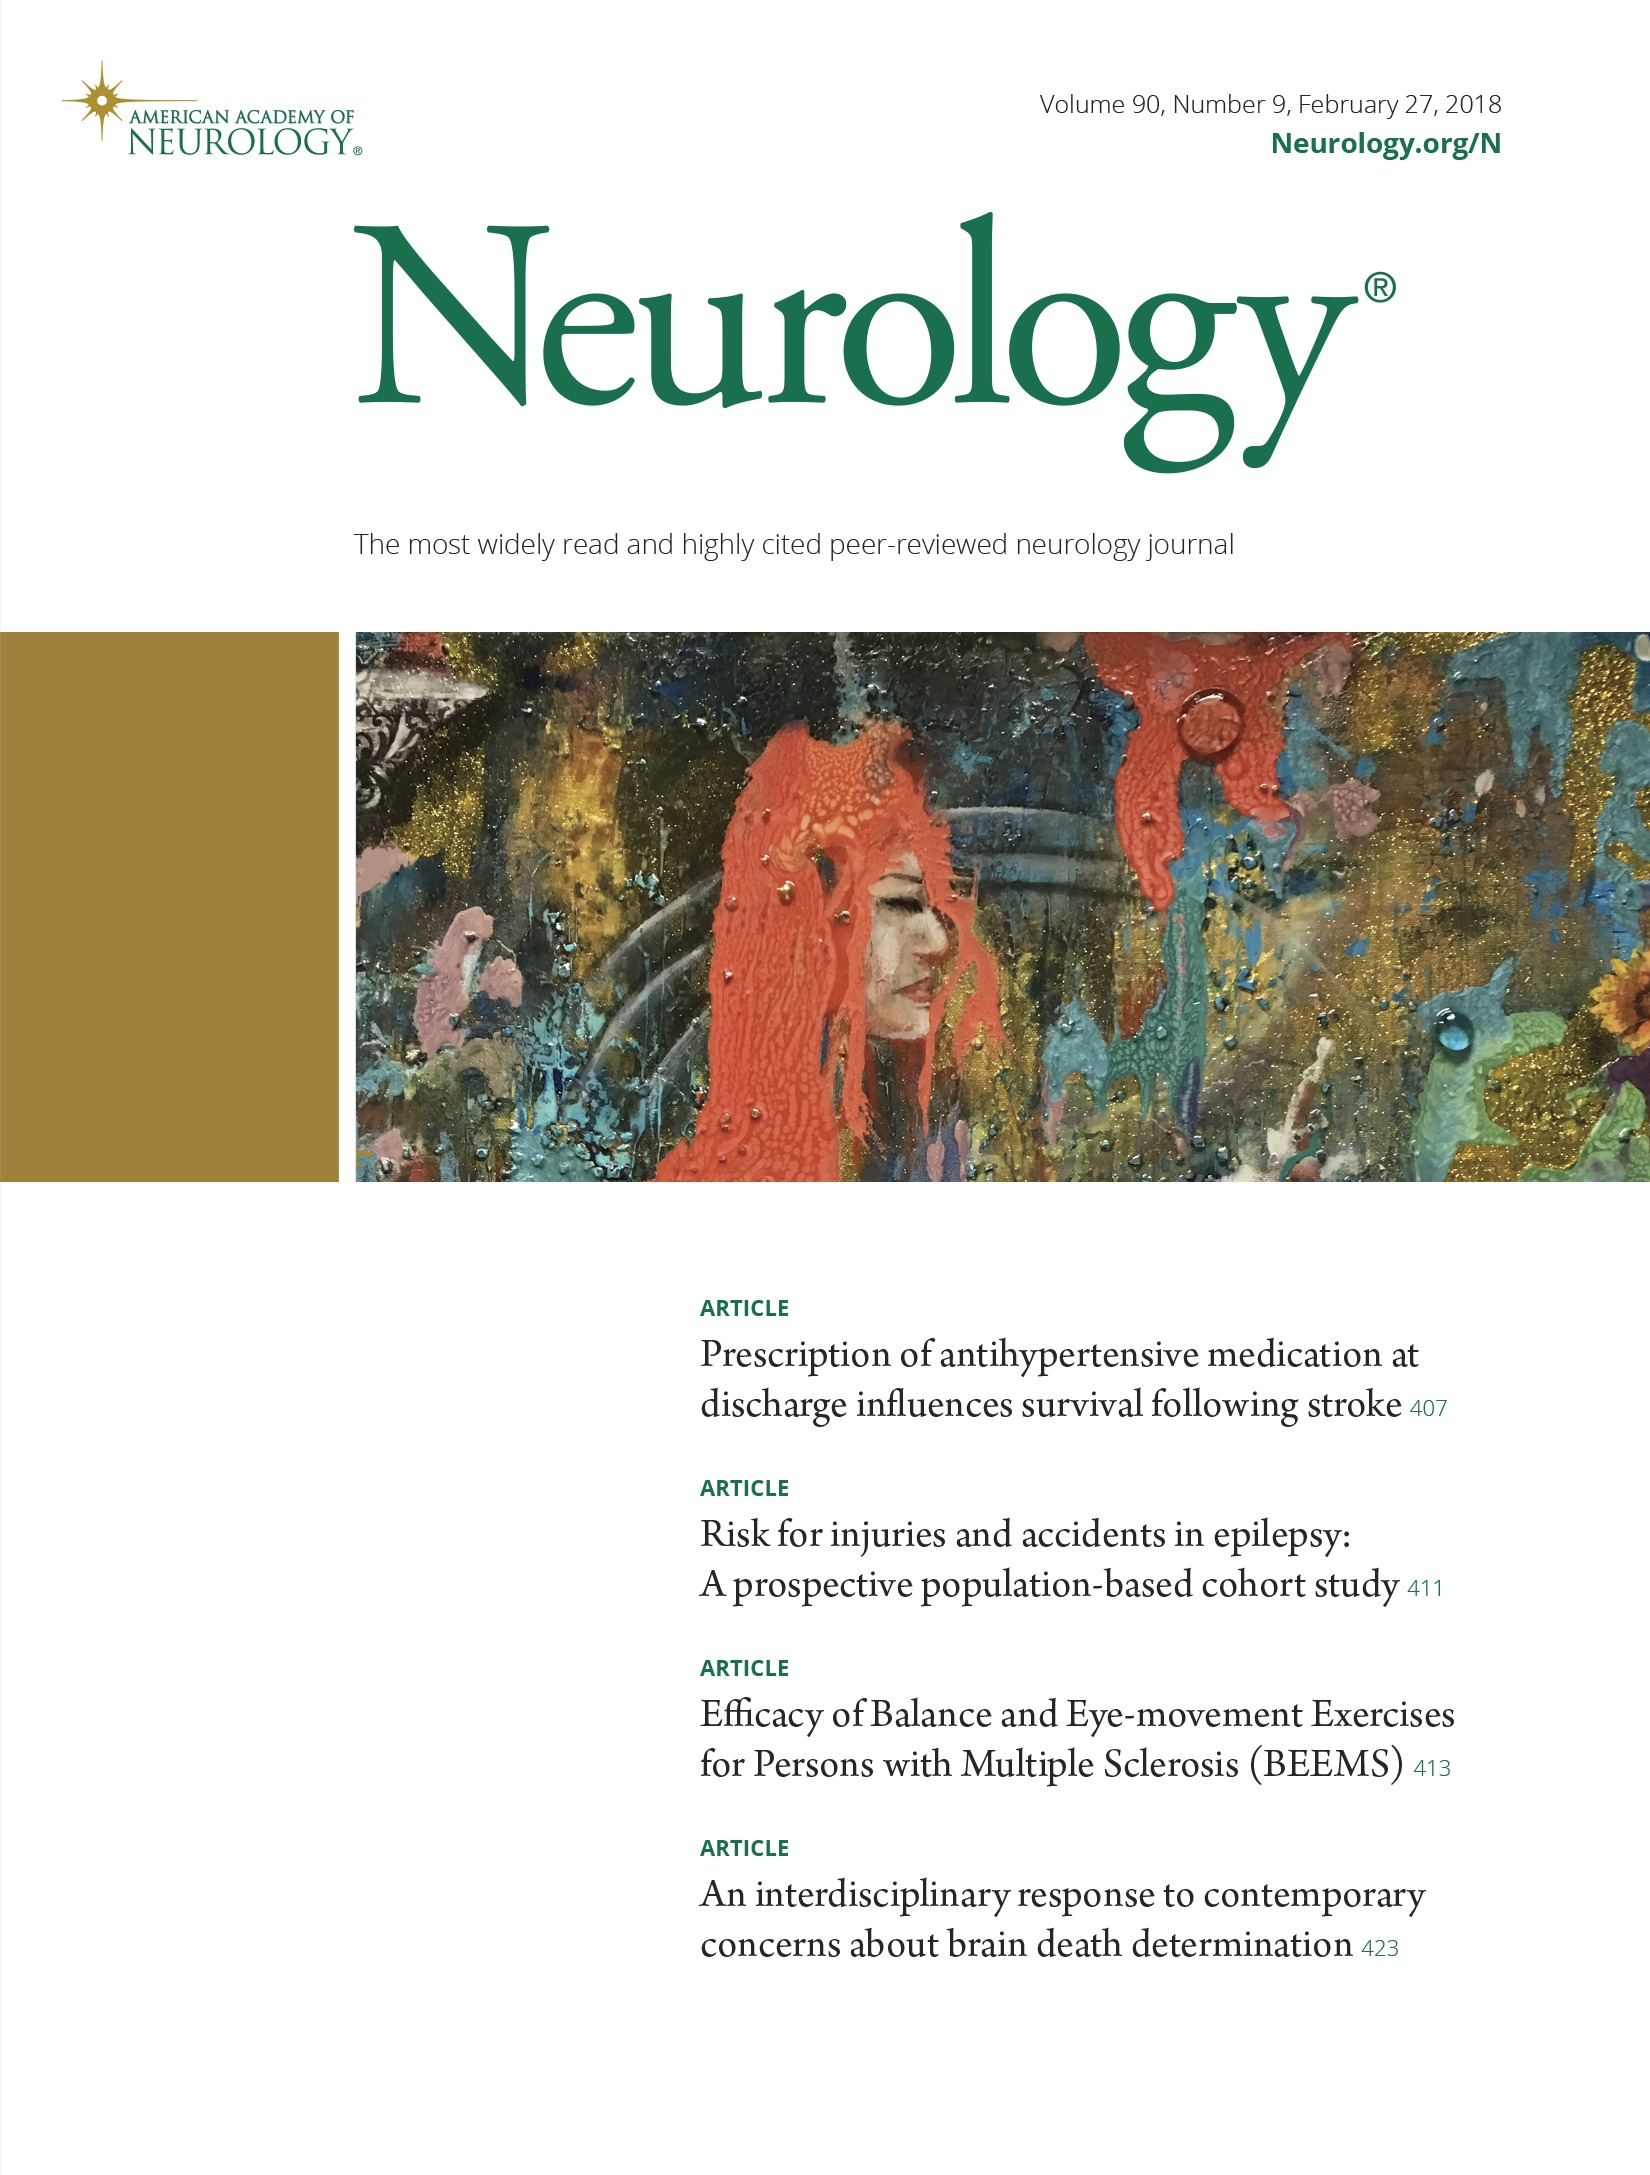 Risk for injuries and accidents in epilepsy   Neurology